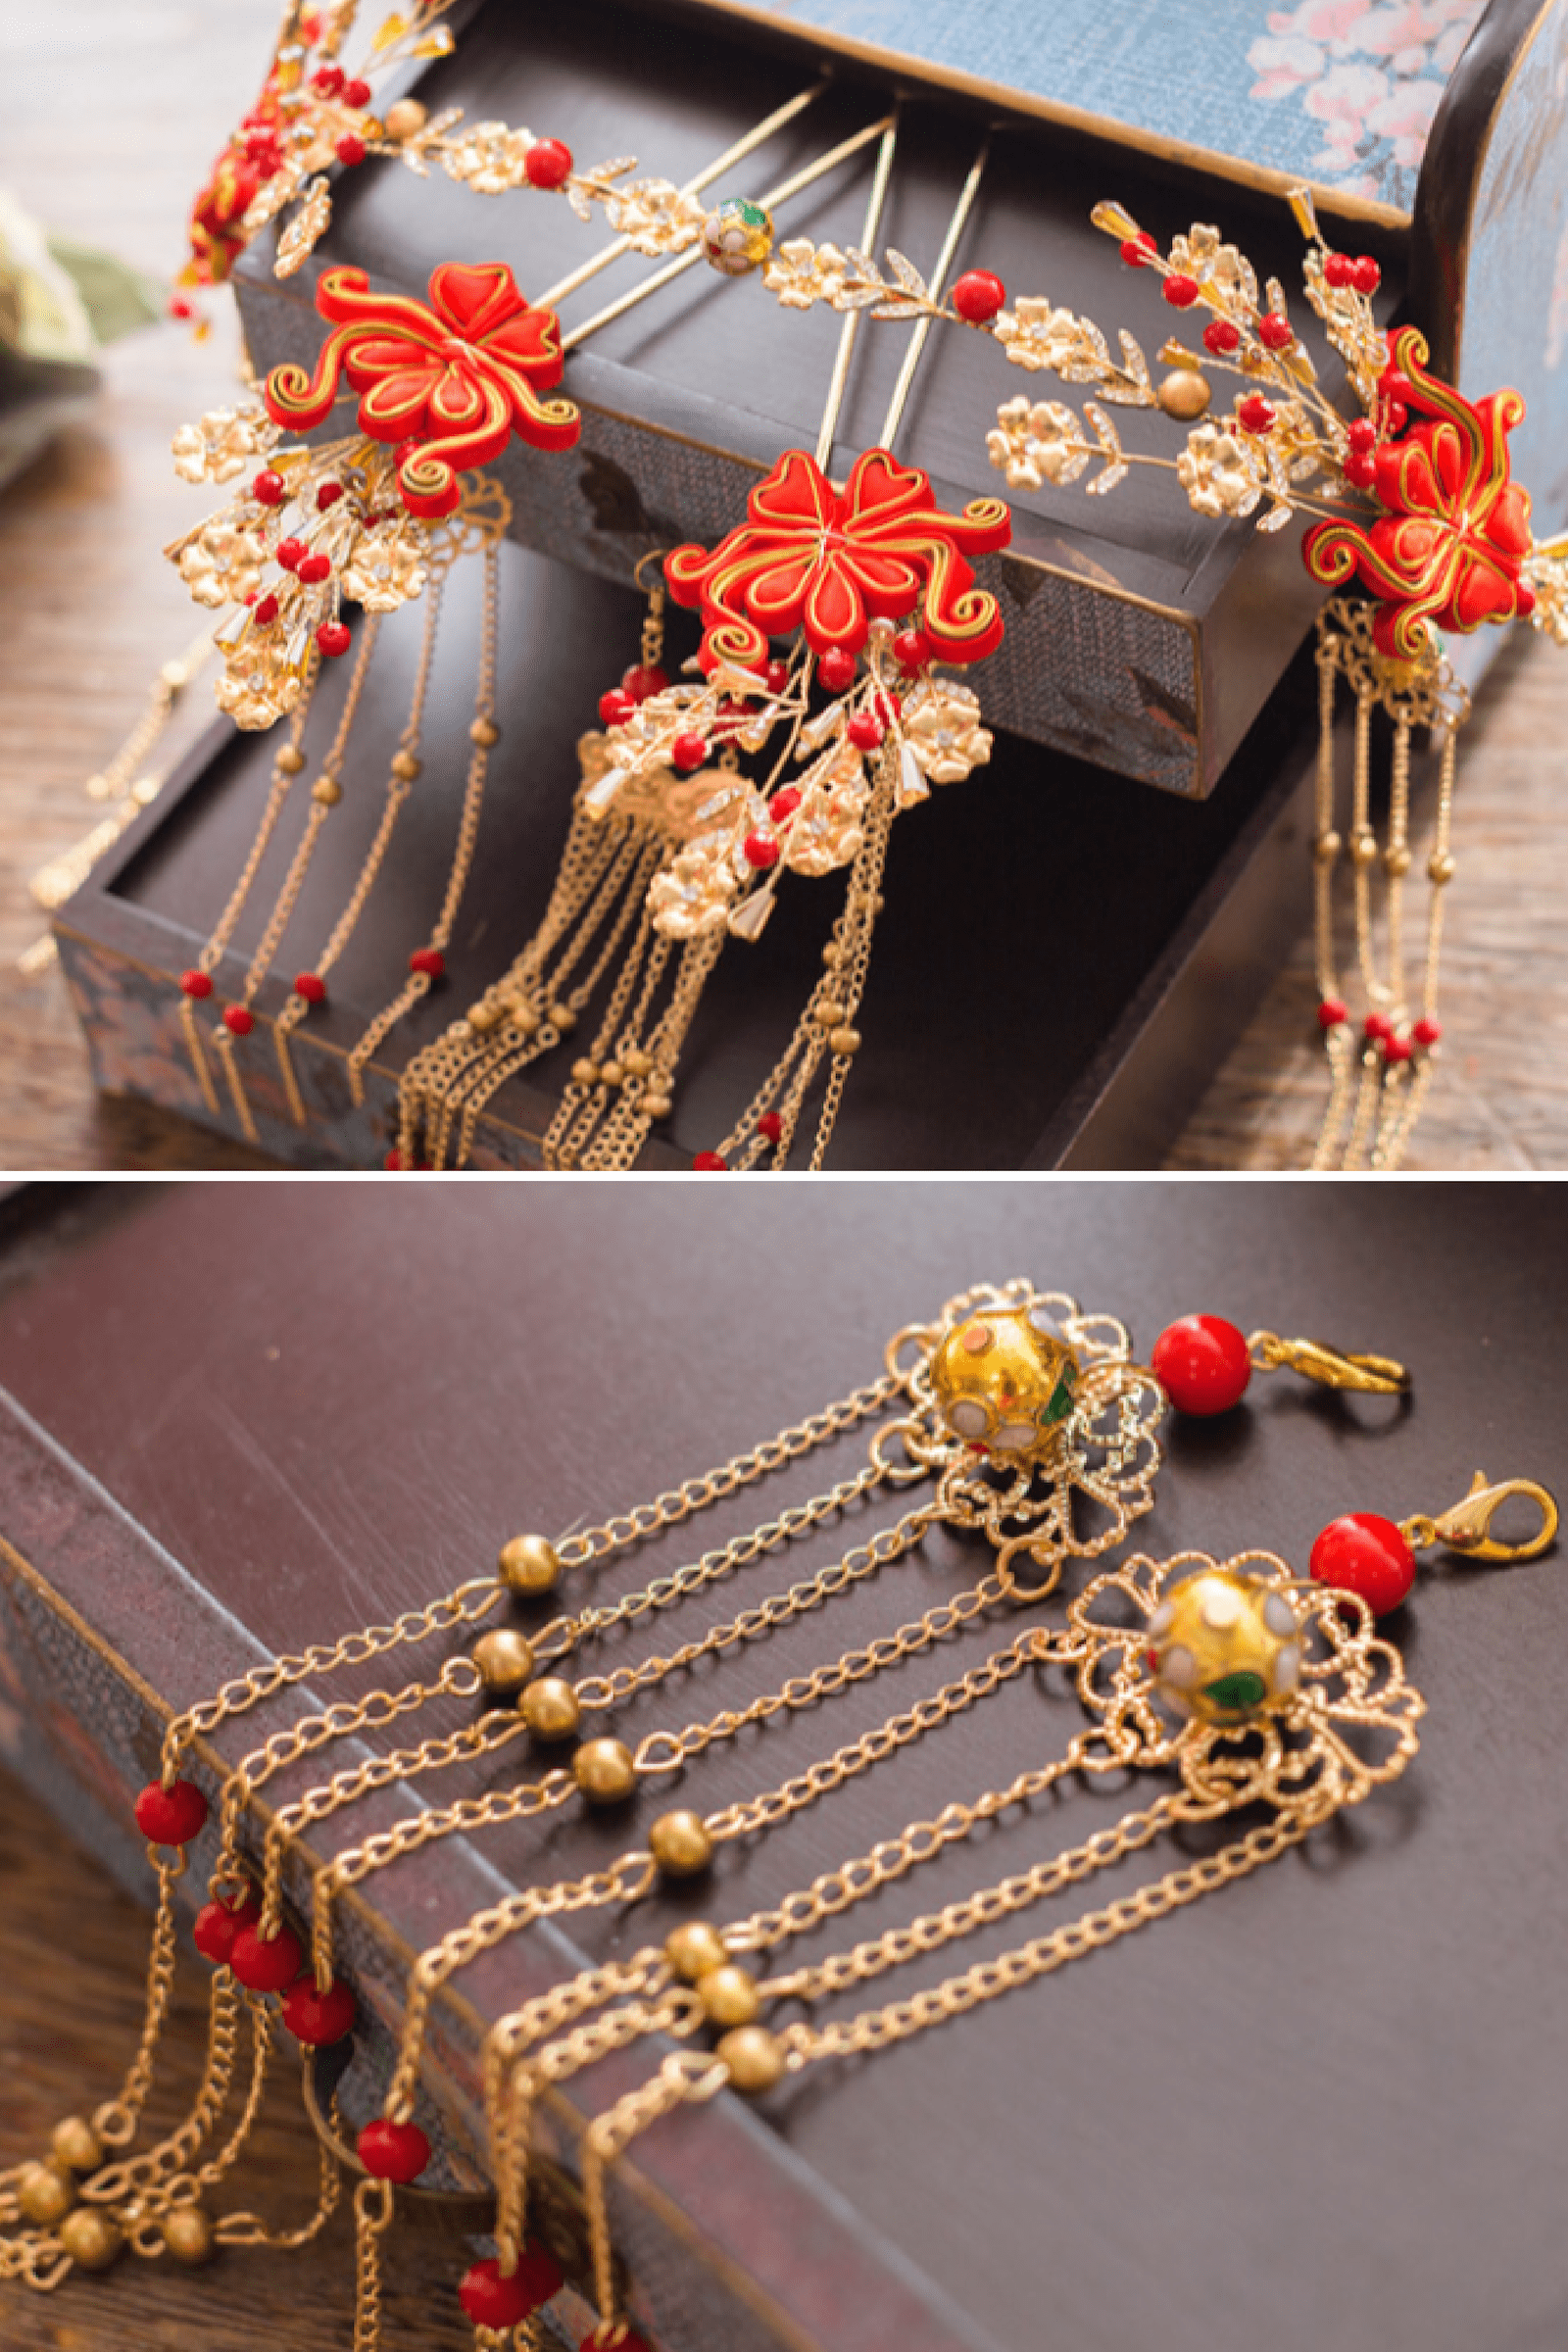 Ruby Hairpin - Accessories - East Meets Dress